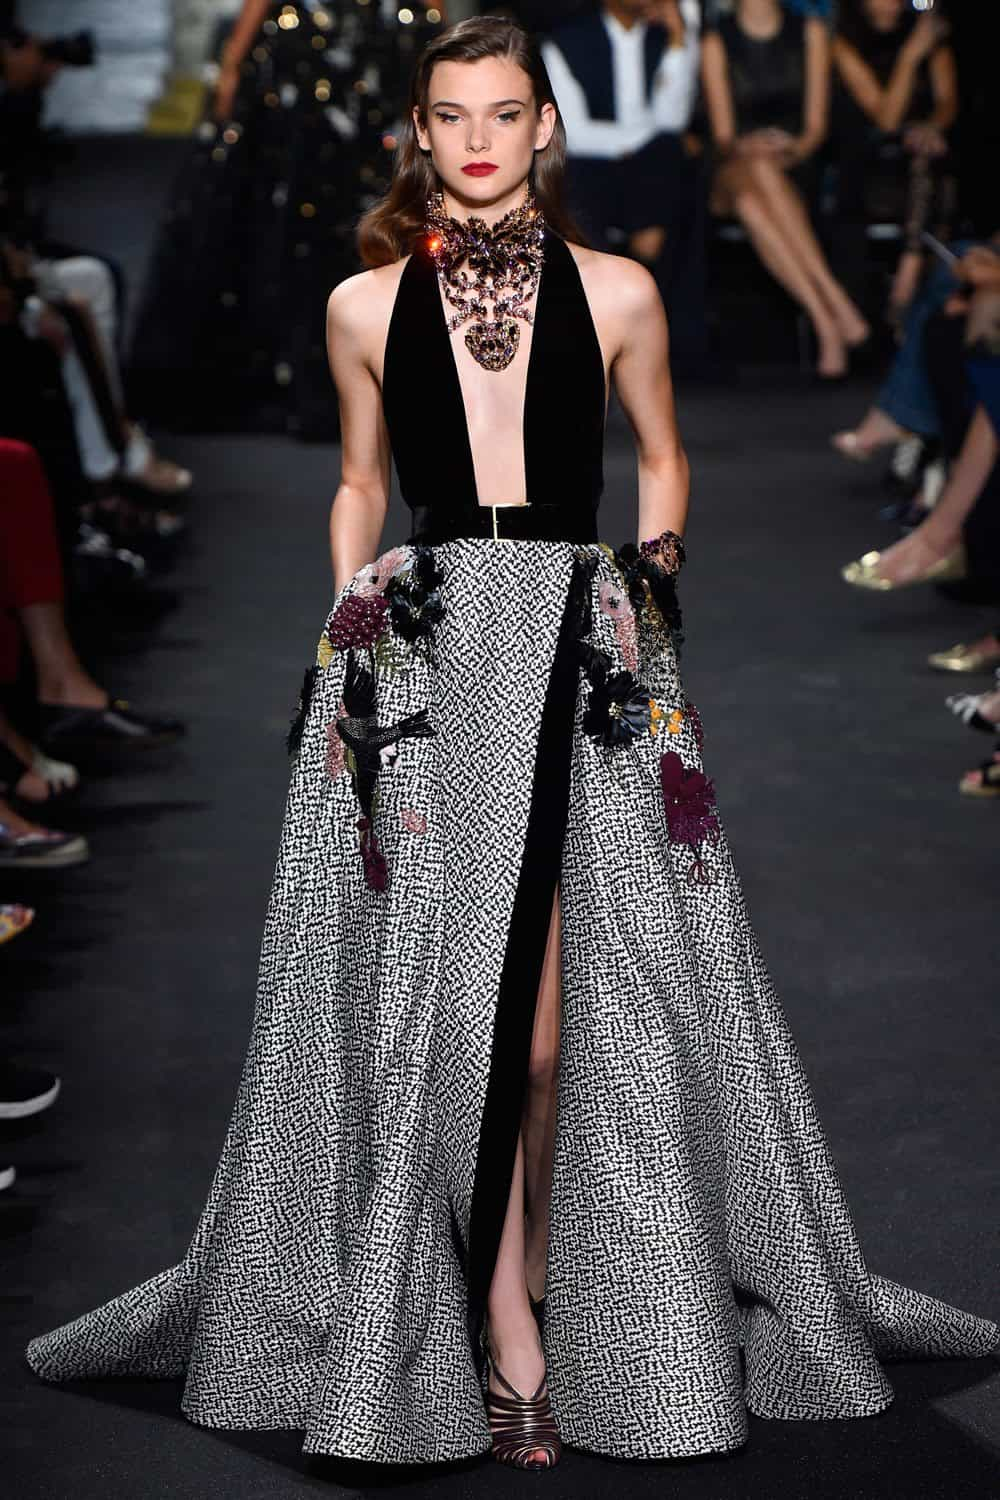 elie-saab-Photo-Kim-Weston-Arnold.-Indigital.tv19